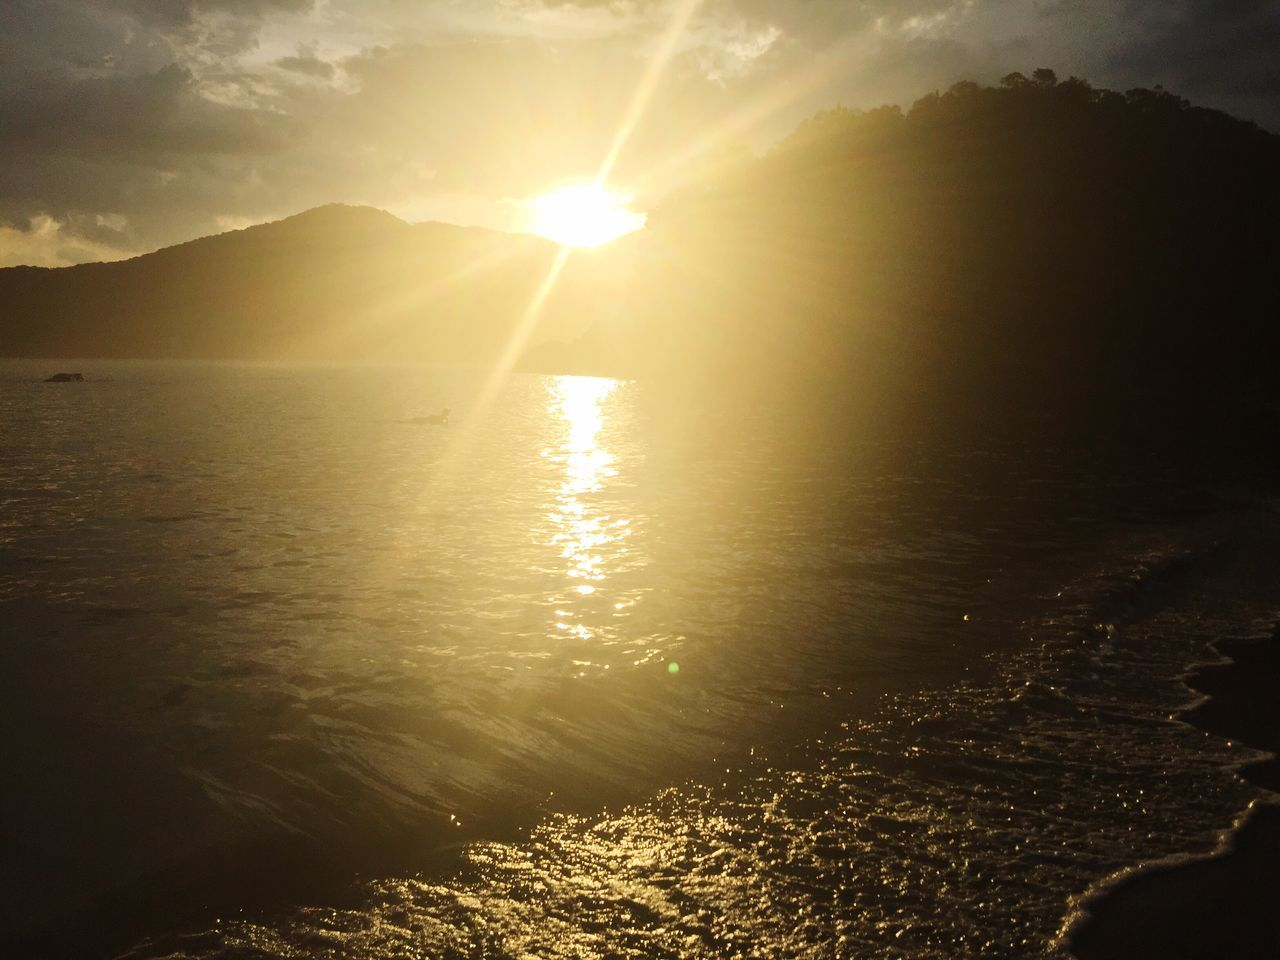 sunset, sun, sunbeam, sunlight, lens flare, nature, beauty in nature, water, scenics, tranquil scene, tranquility, silhouette, reflection, outdoors, no people, idyllic, sky, mountain, sea, travel destinations, vacations, day